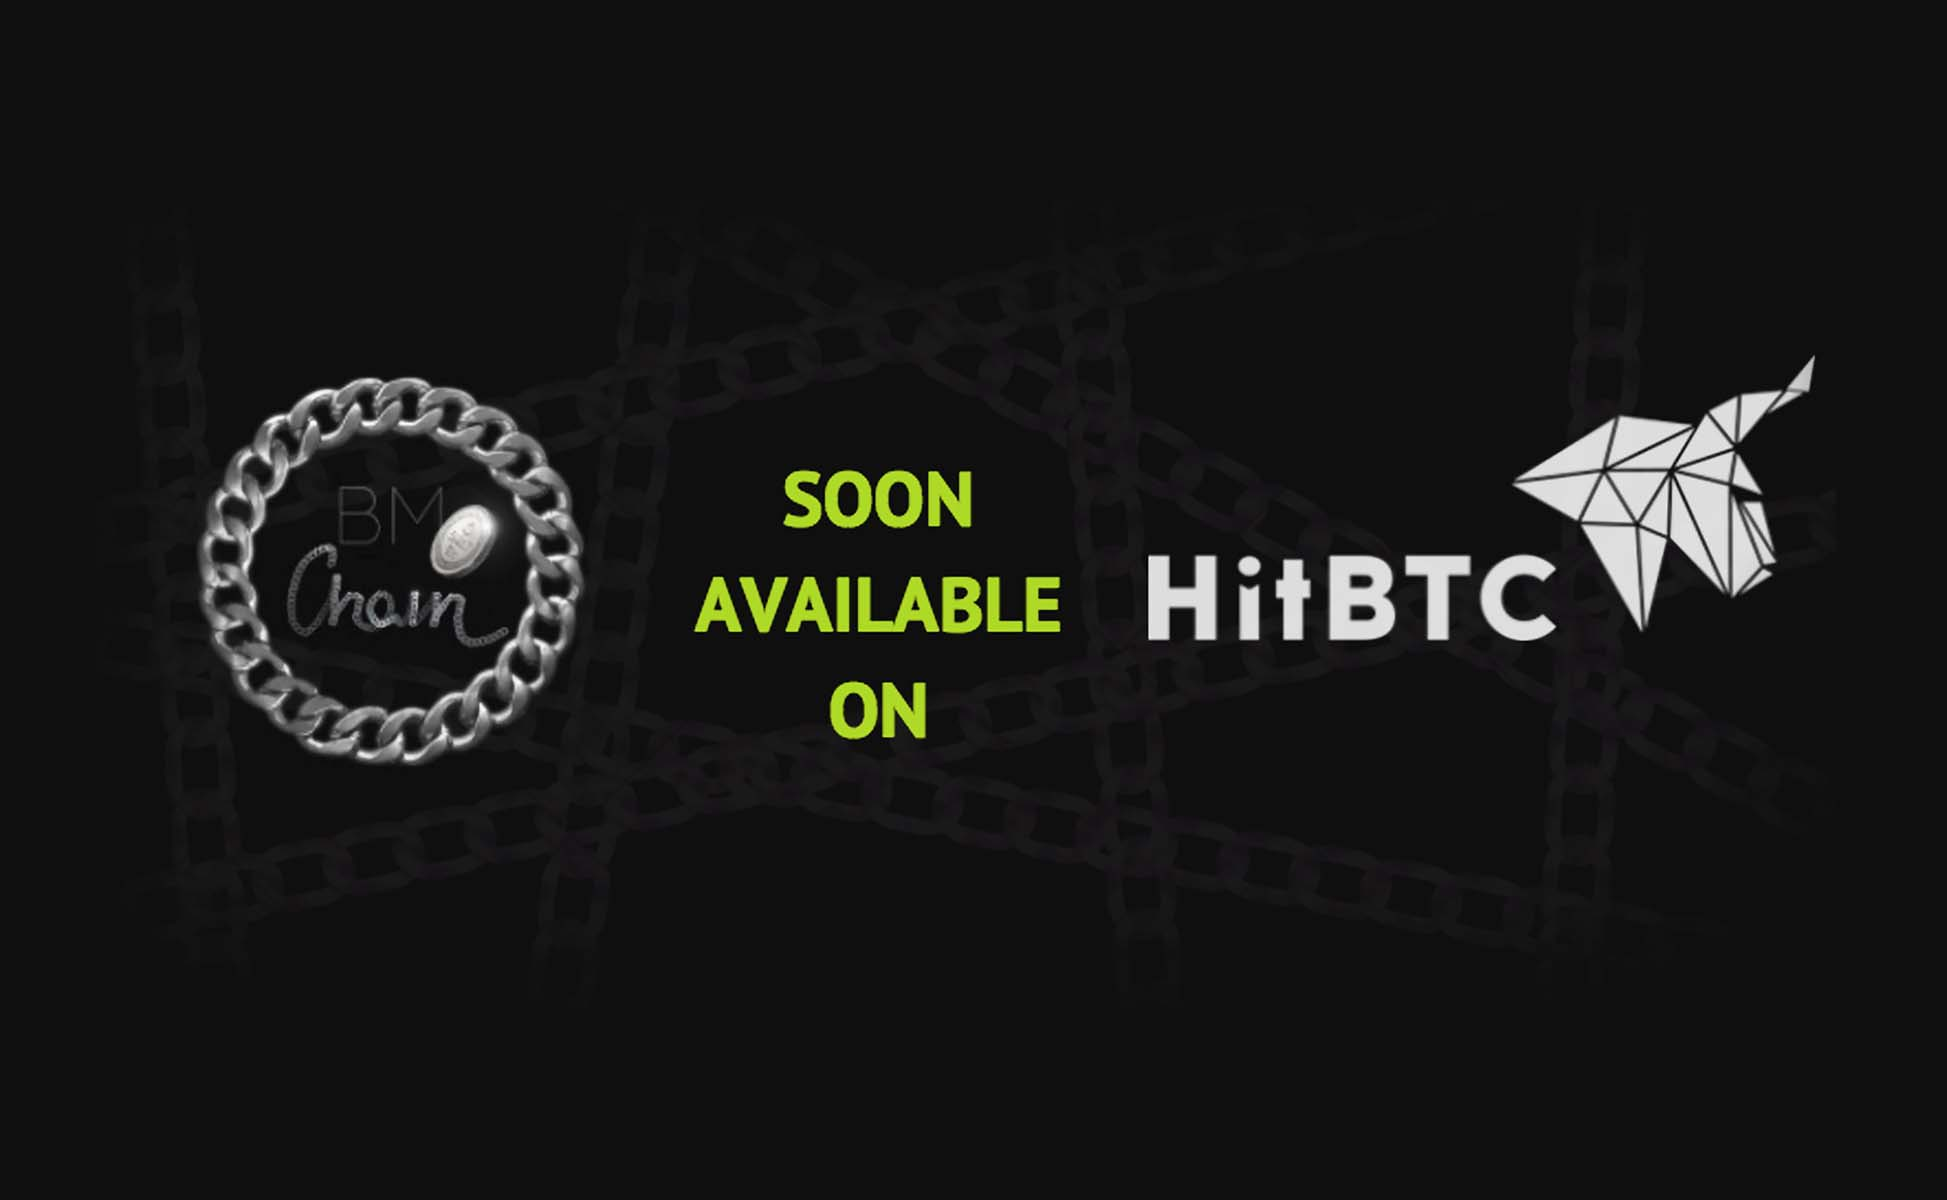 Bmchain ico ends today hitbtc exchange listing to follow bmchain ico ends today hitbtc exchange listing to follow bitcoinist ccuart Gallery